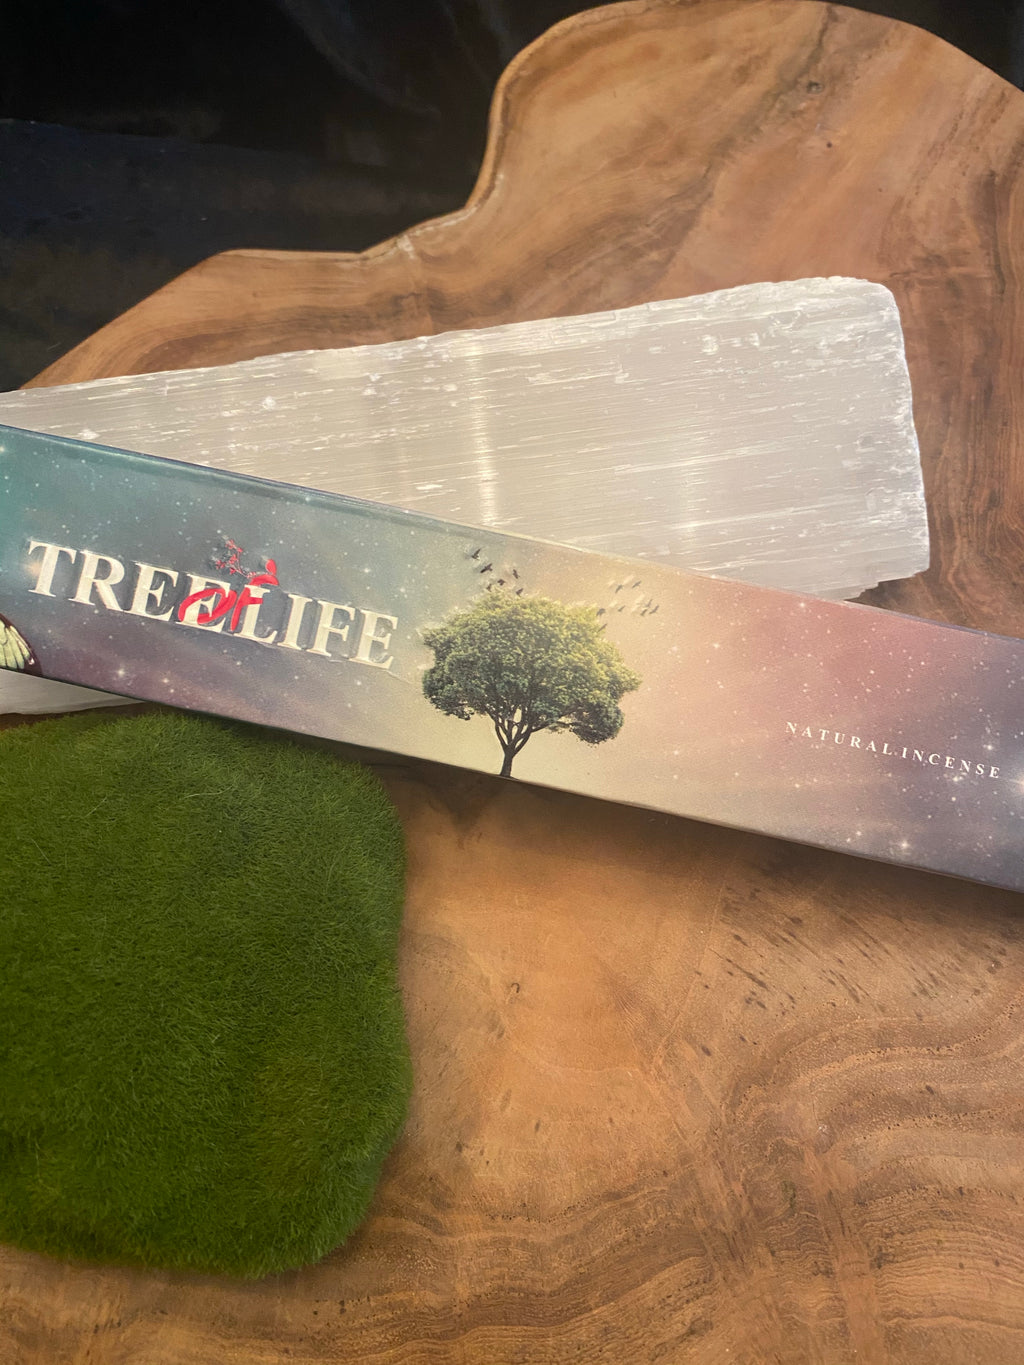 Tree of life incense, 15g